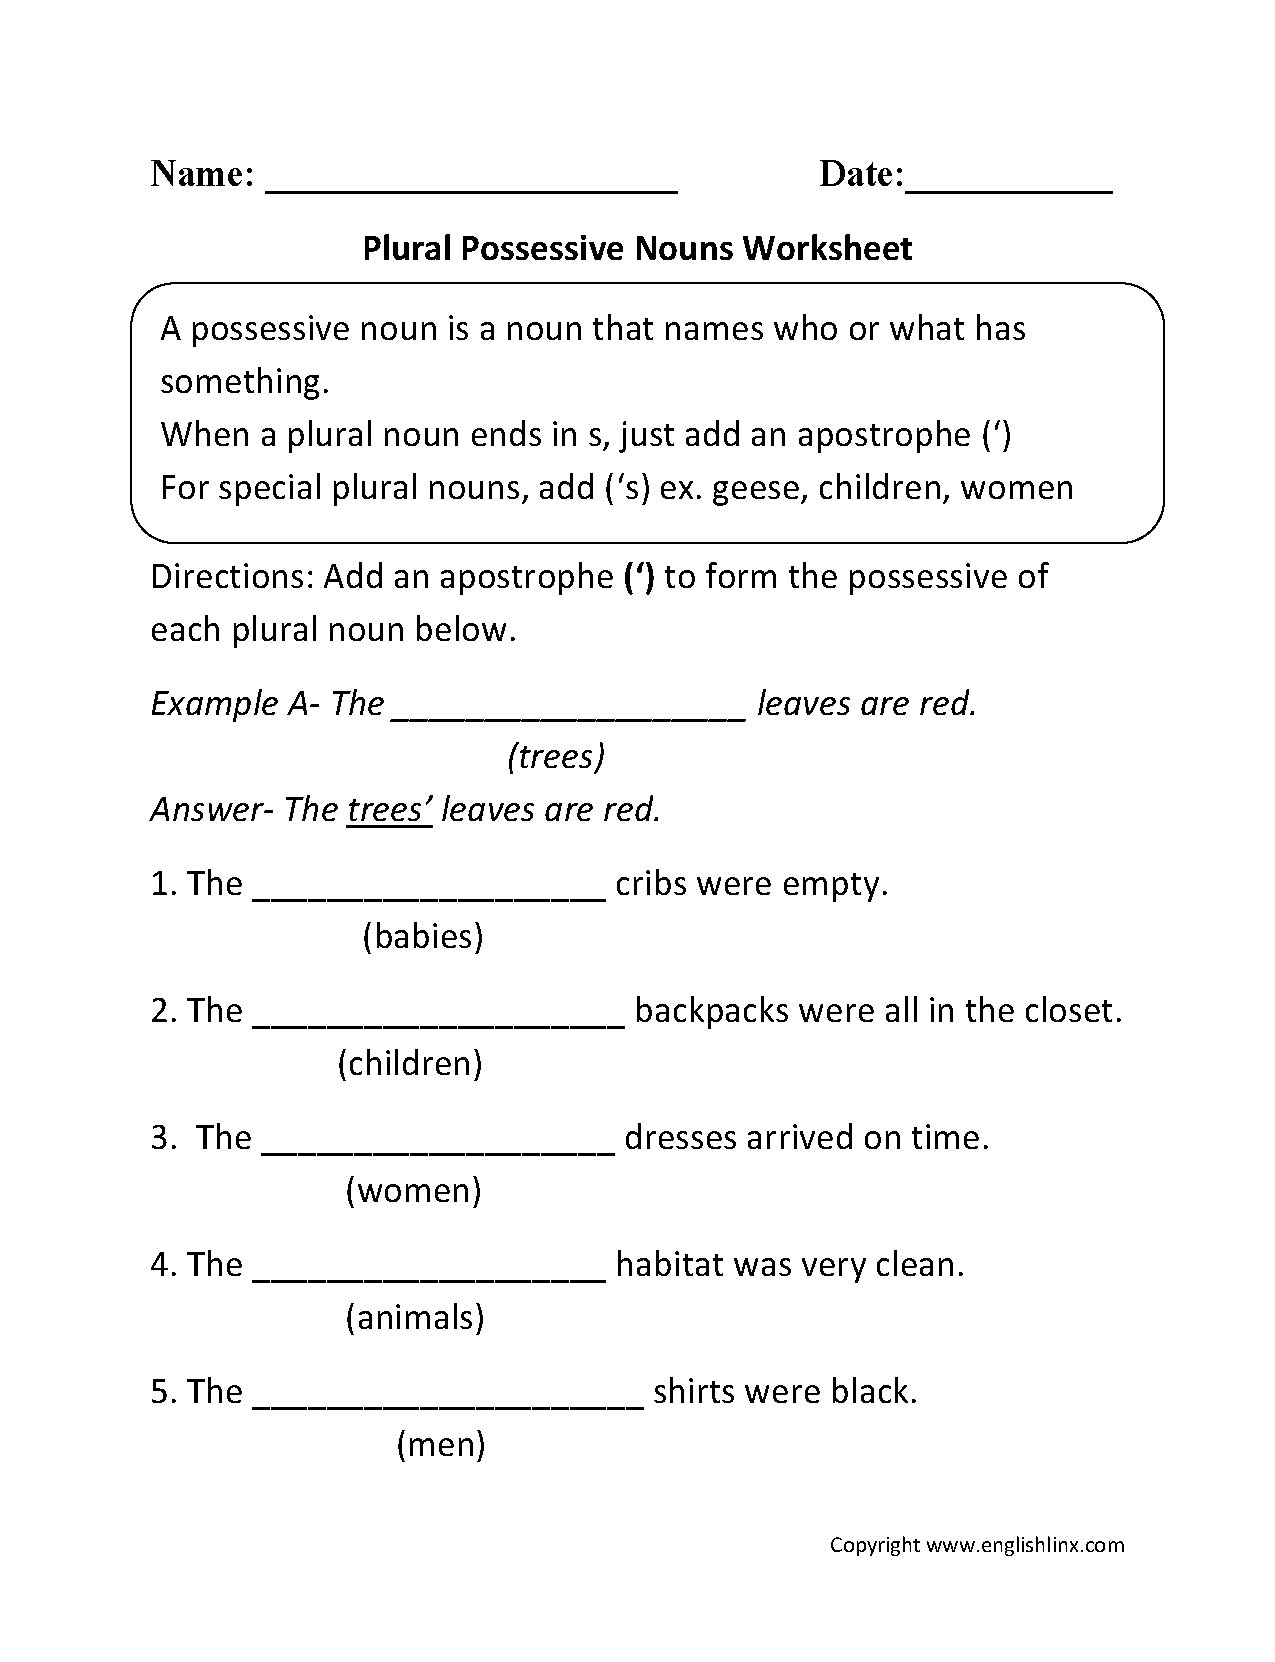 Aldiablosus  Splendid Nouns Worksheets  Possessive Nouns Worksheets With Interesting Possessive Nouns Worksheets With Delightful Cursive Practice Worksheet Also Multiplication Table Worksheet Printable In Addition Simple Graphing Worksheets And Dot To Dot Worksheets For Kindergarten As Well As Reading Charts And Graphs Worksheet Additionally Detention Worksheets From Englishlinxcom With Aldiablosus  Interesting Nouns Worksheets  Possessive Nouns Worksheets With Delightful Possessive Nouns Worksheets And Splendid Cursive Practice Worksheet Also Multiplication Table Worksheet Printable In Addition Simple Graphing Worksheets From Englishlinxcom